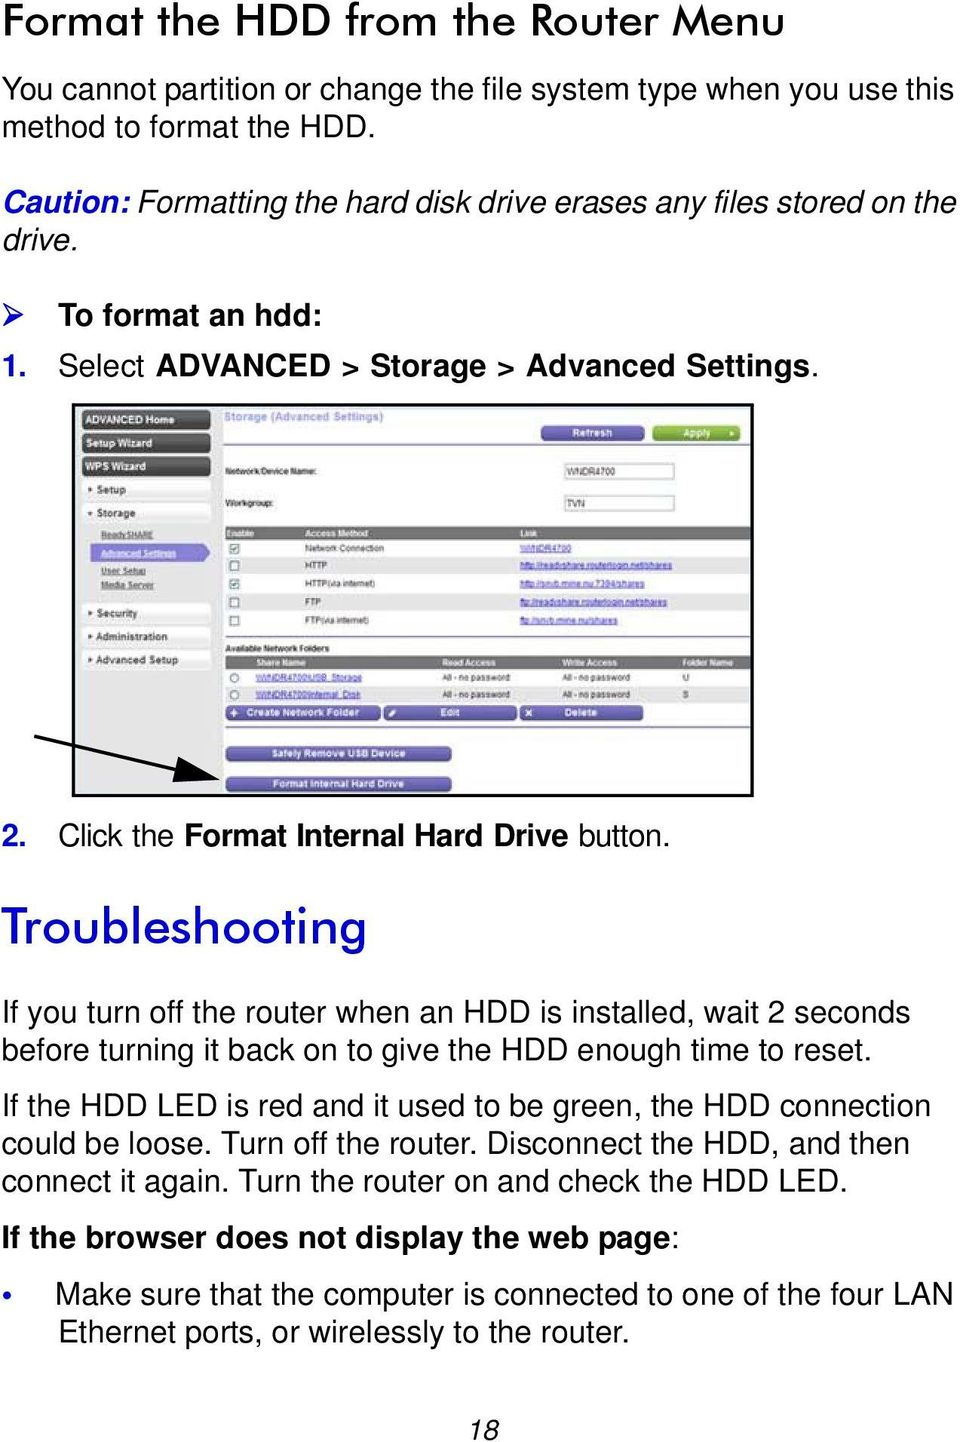 Troubleshooting If you turn off the router when an HDD is installed, wait 2 seconds before turning it back on to give the HDD enough time to reset.